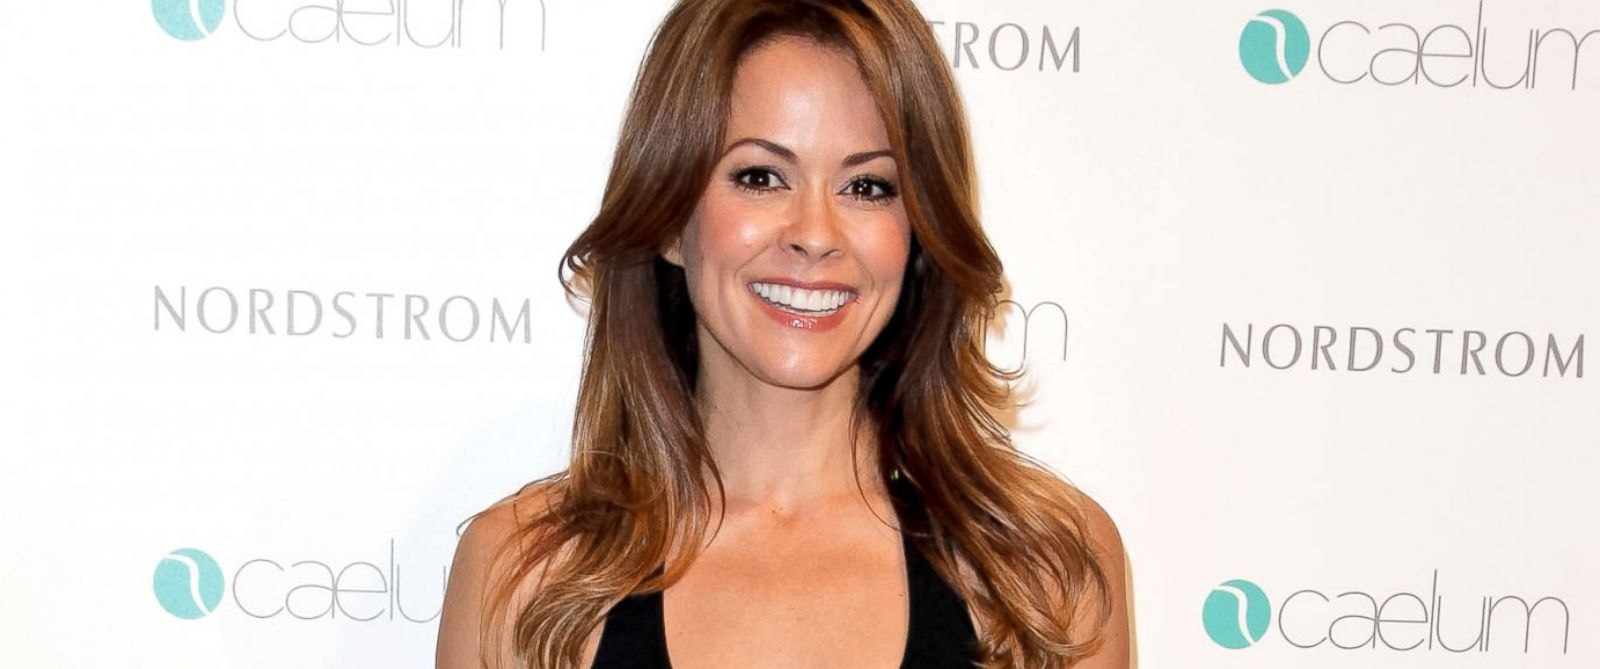 PHOTO: Brooke Burke-Charvet celebrates the launch of her fitness apparel line Caelu at Nordstrom at the Grove, May 17, 2014, in Los Angeles.